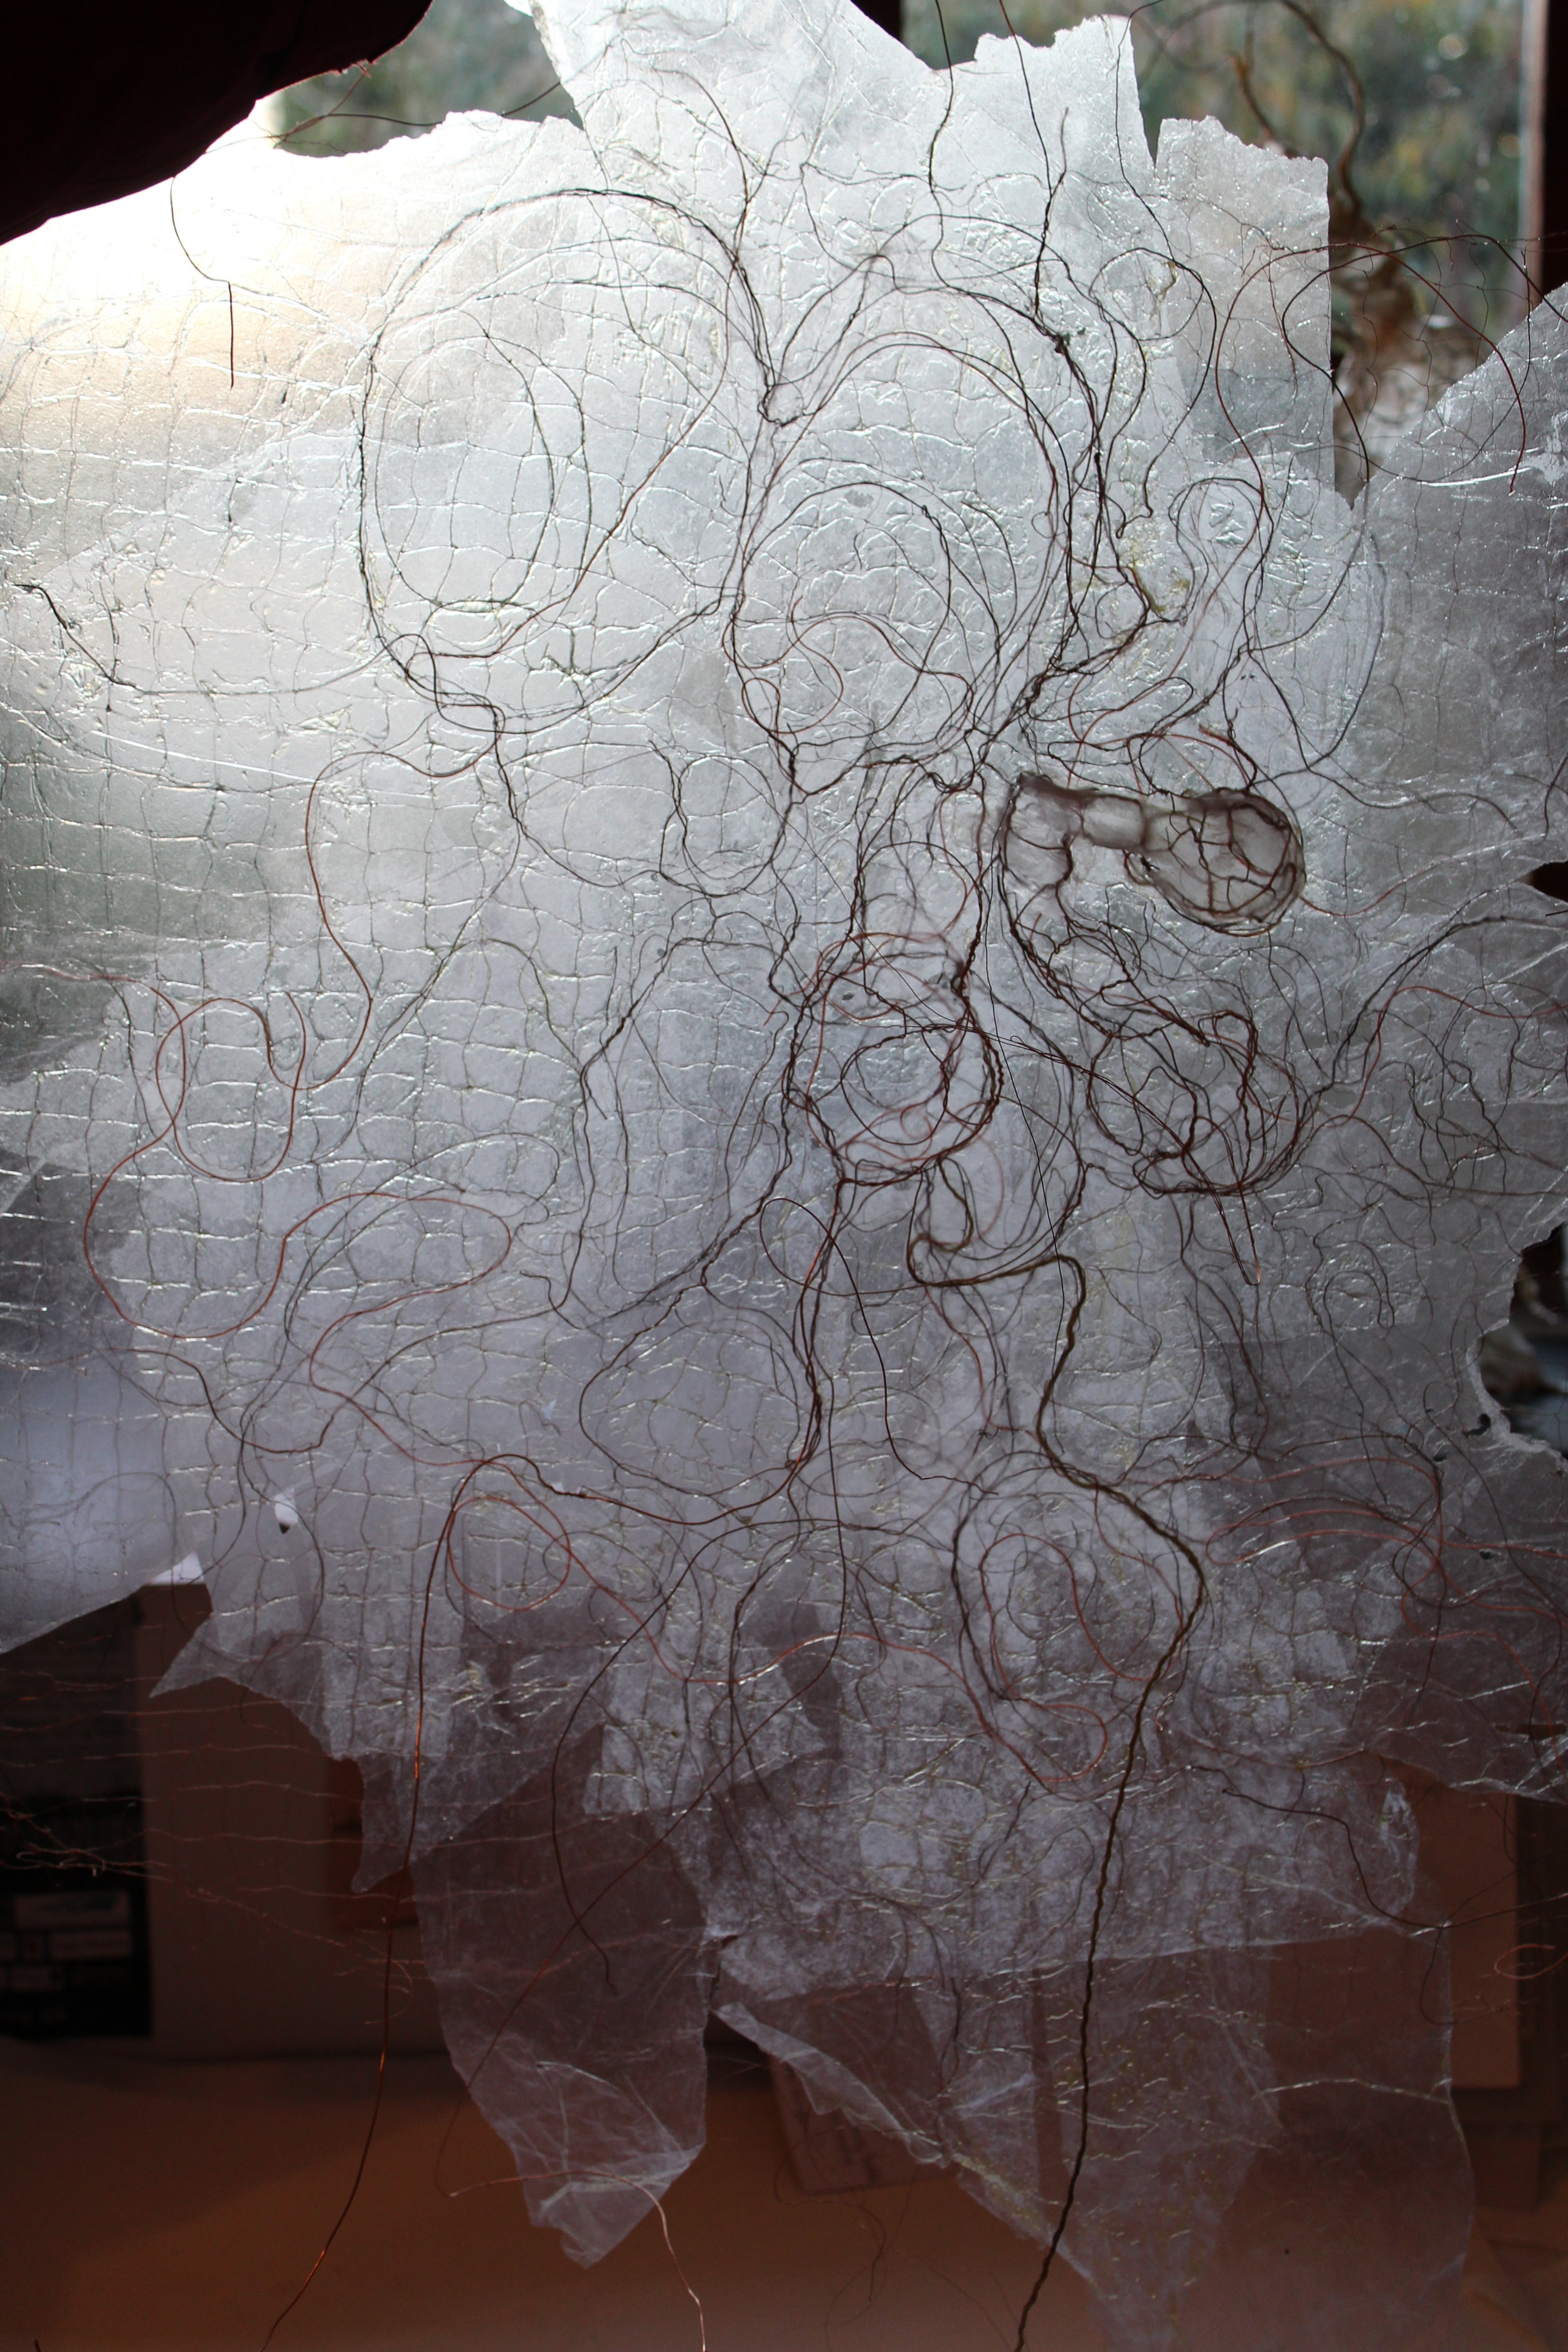 Wire and paper drawing with linseed oil added for transparency and skin-like quality in progress